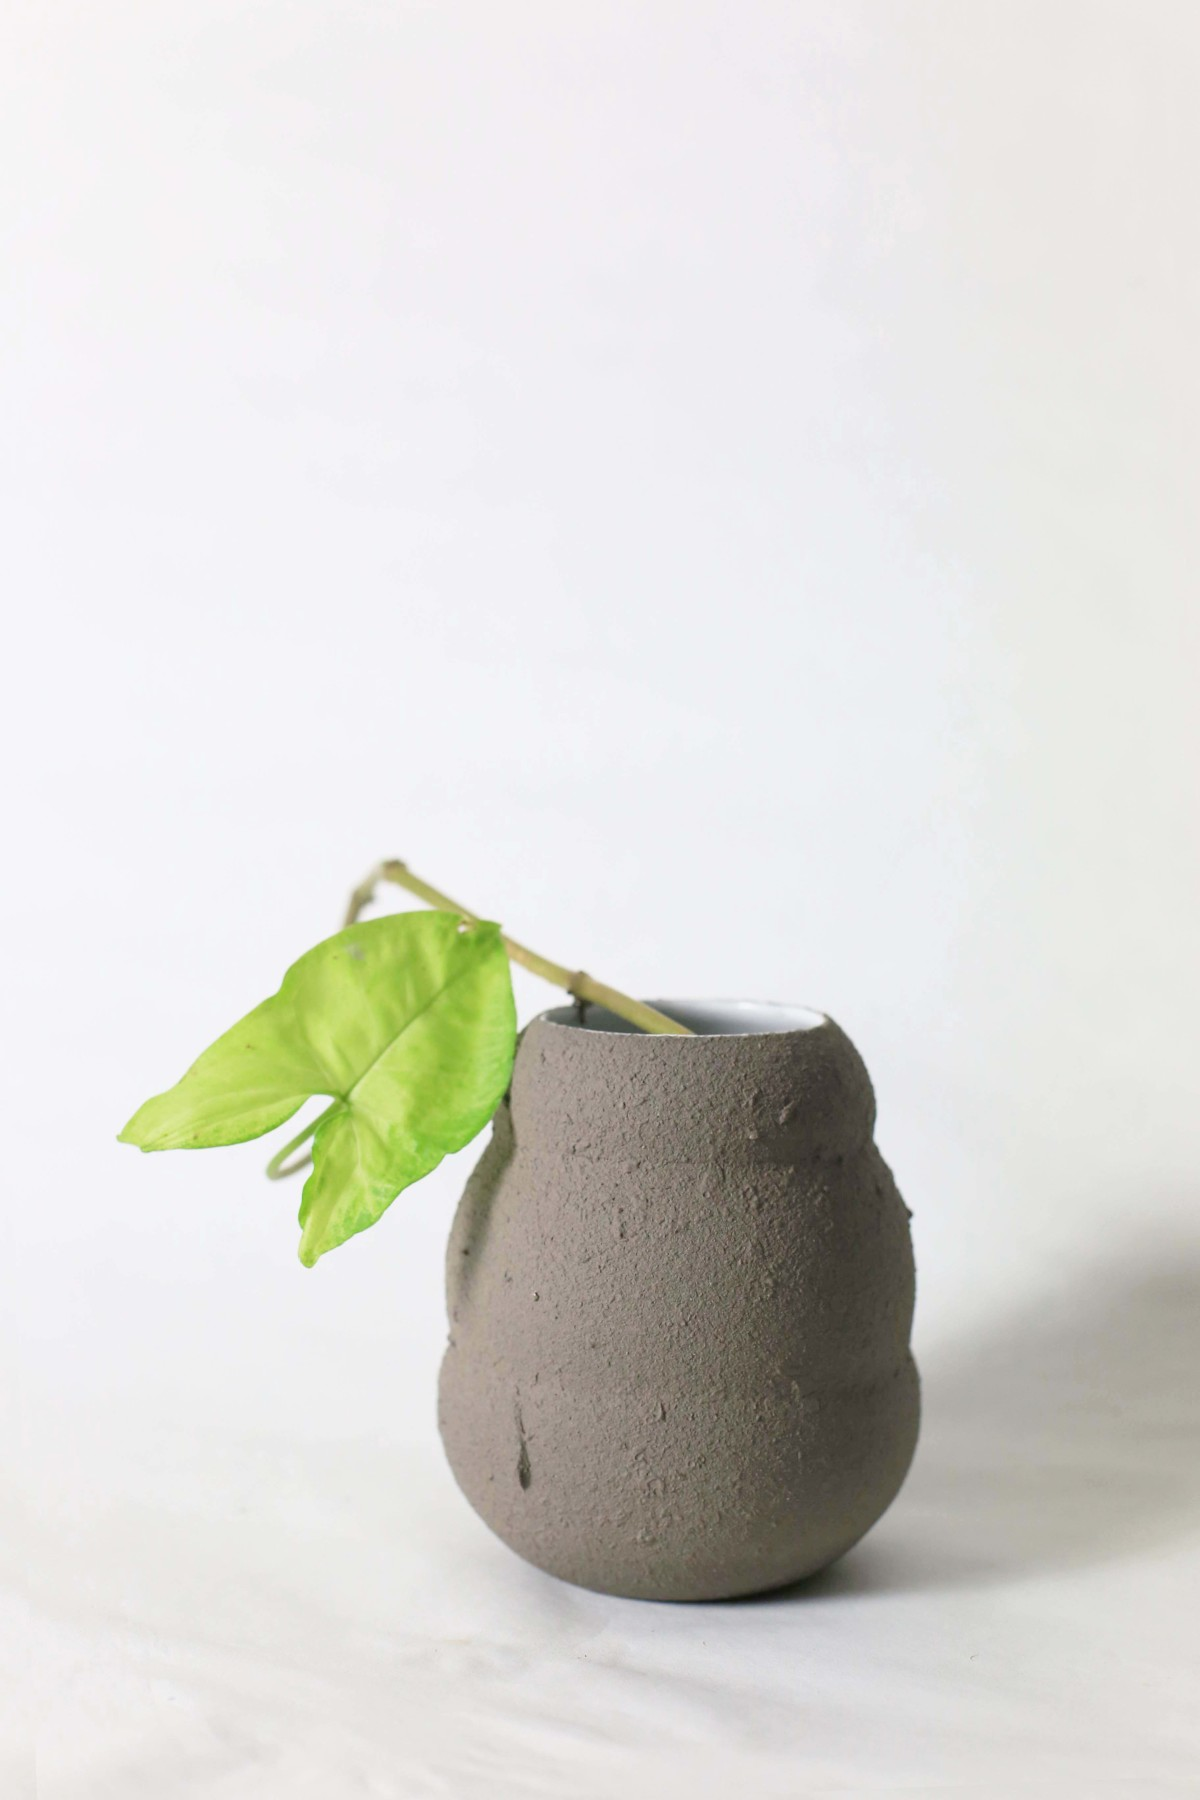 Graphite color ceramic vase in honey pot shape with green leaf on a white background close shot